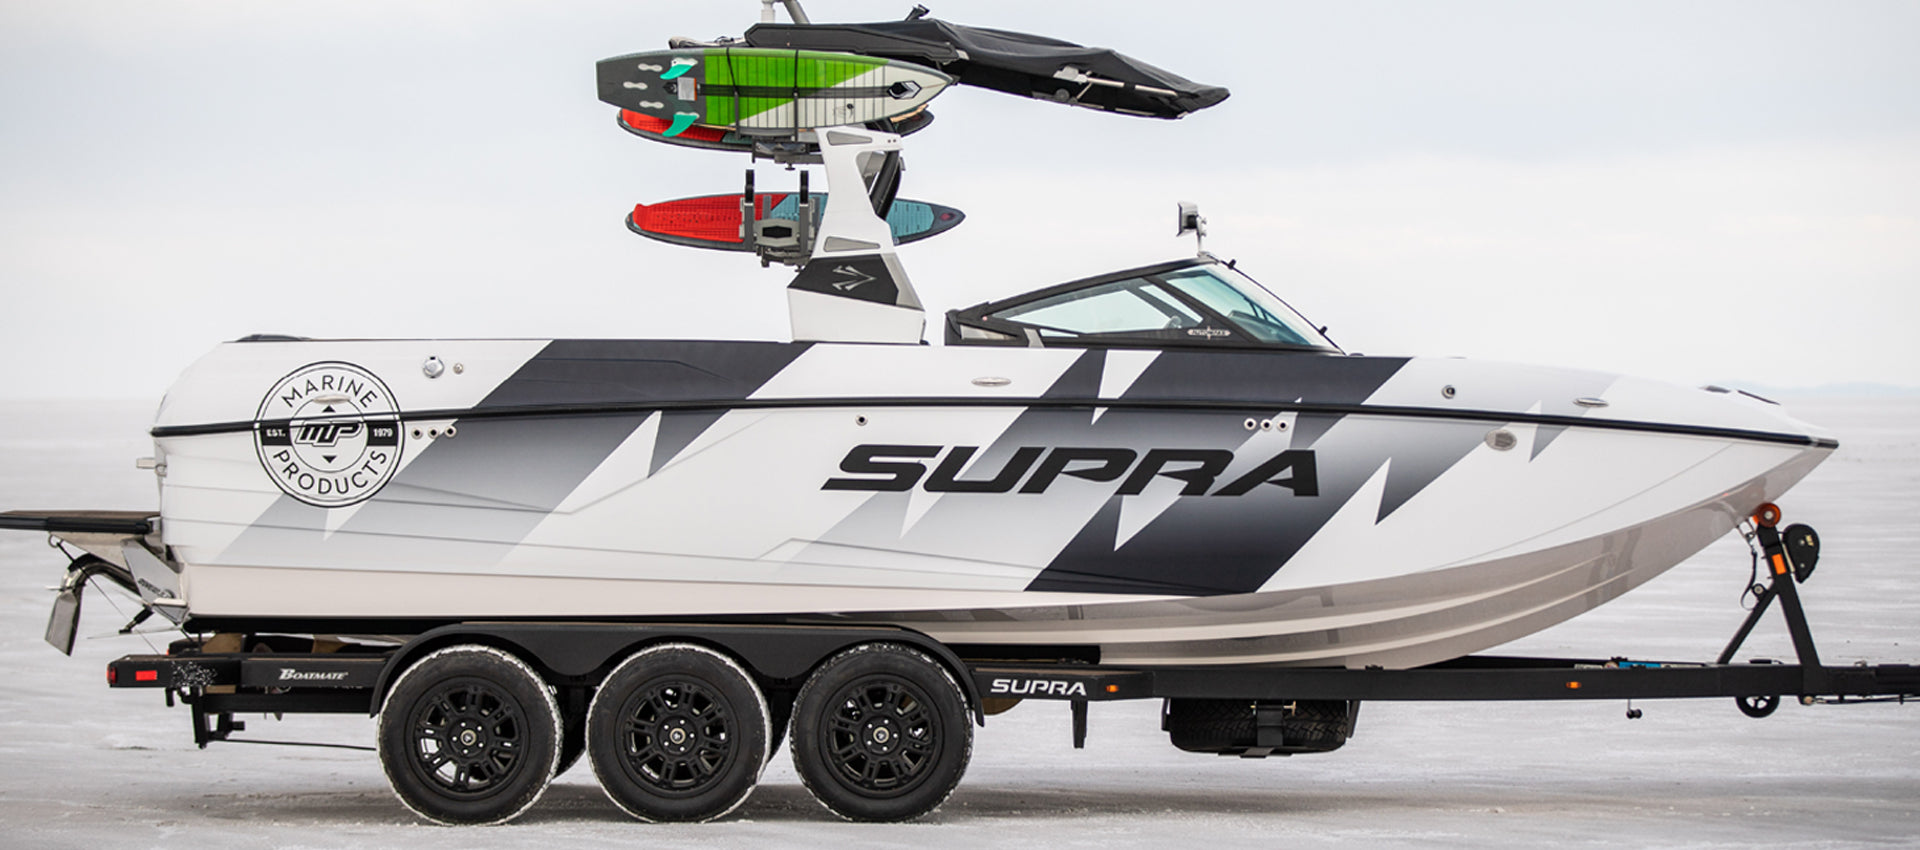 Ken Block Announces New Partnership With Marine Products And Supra 7ffaf6d2c5